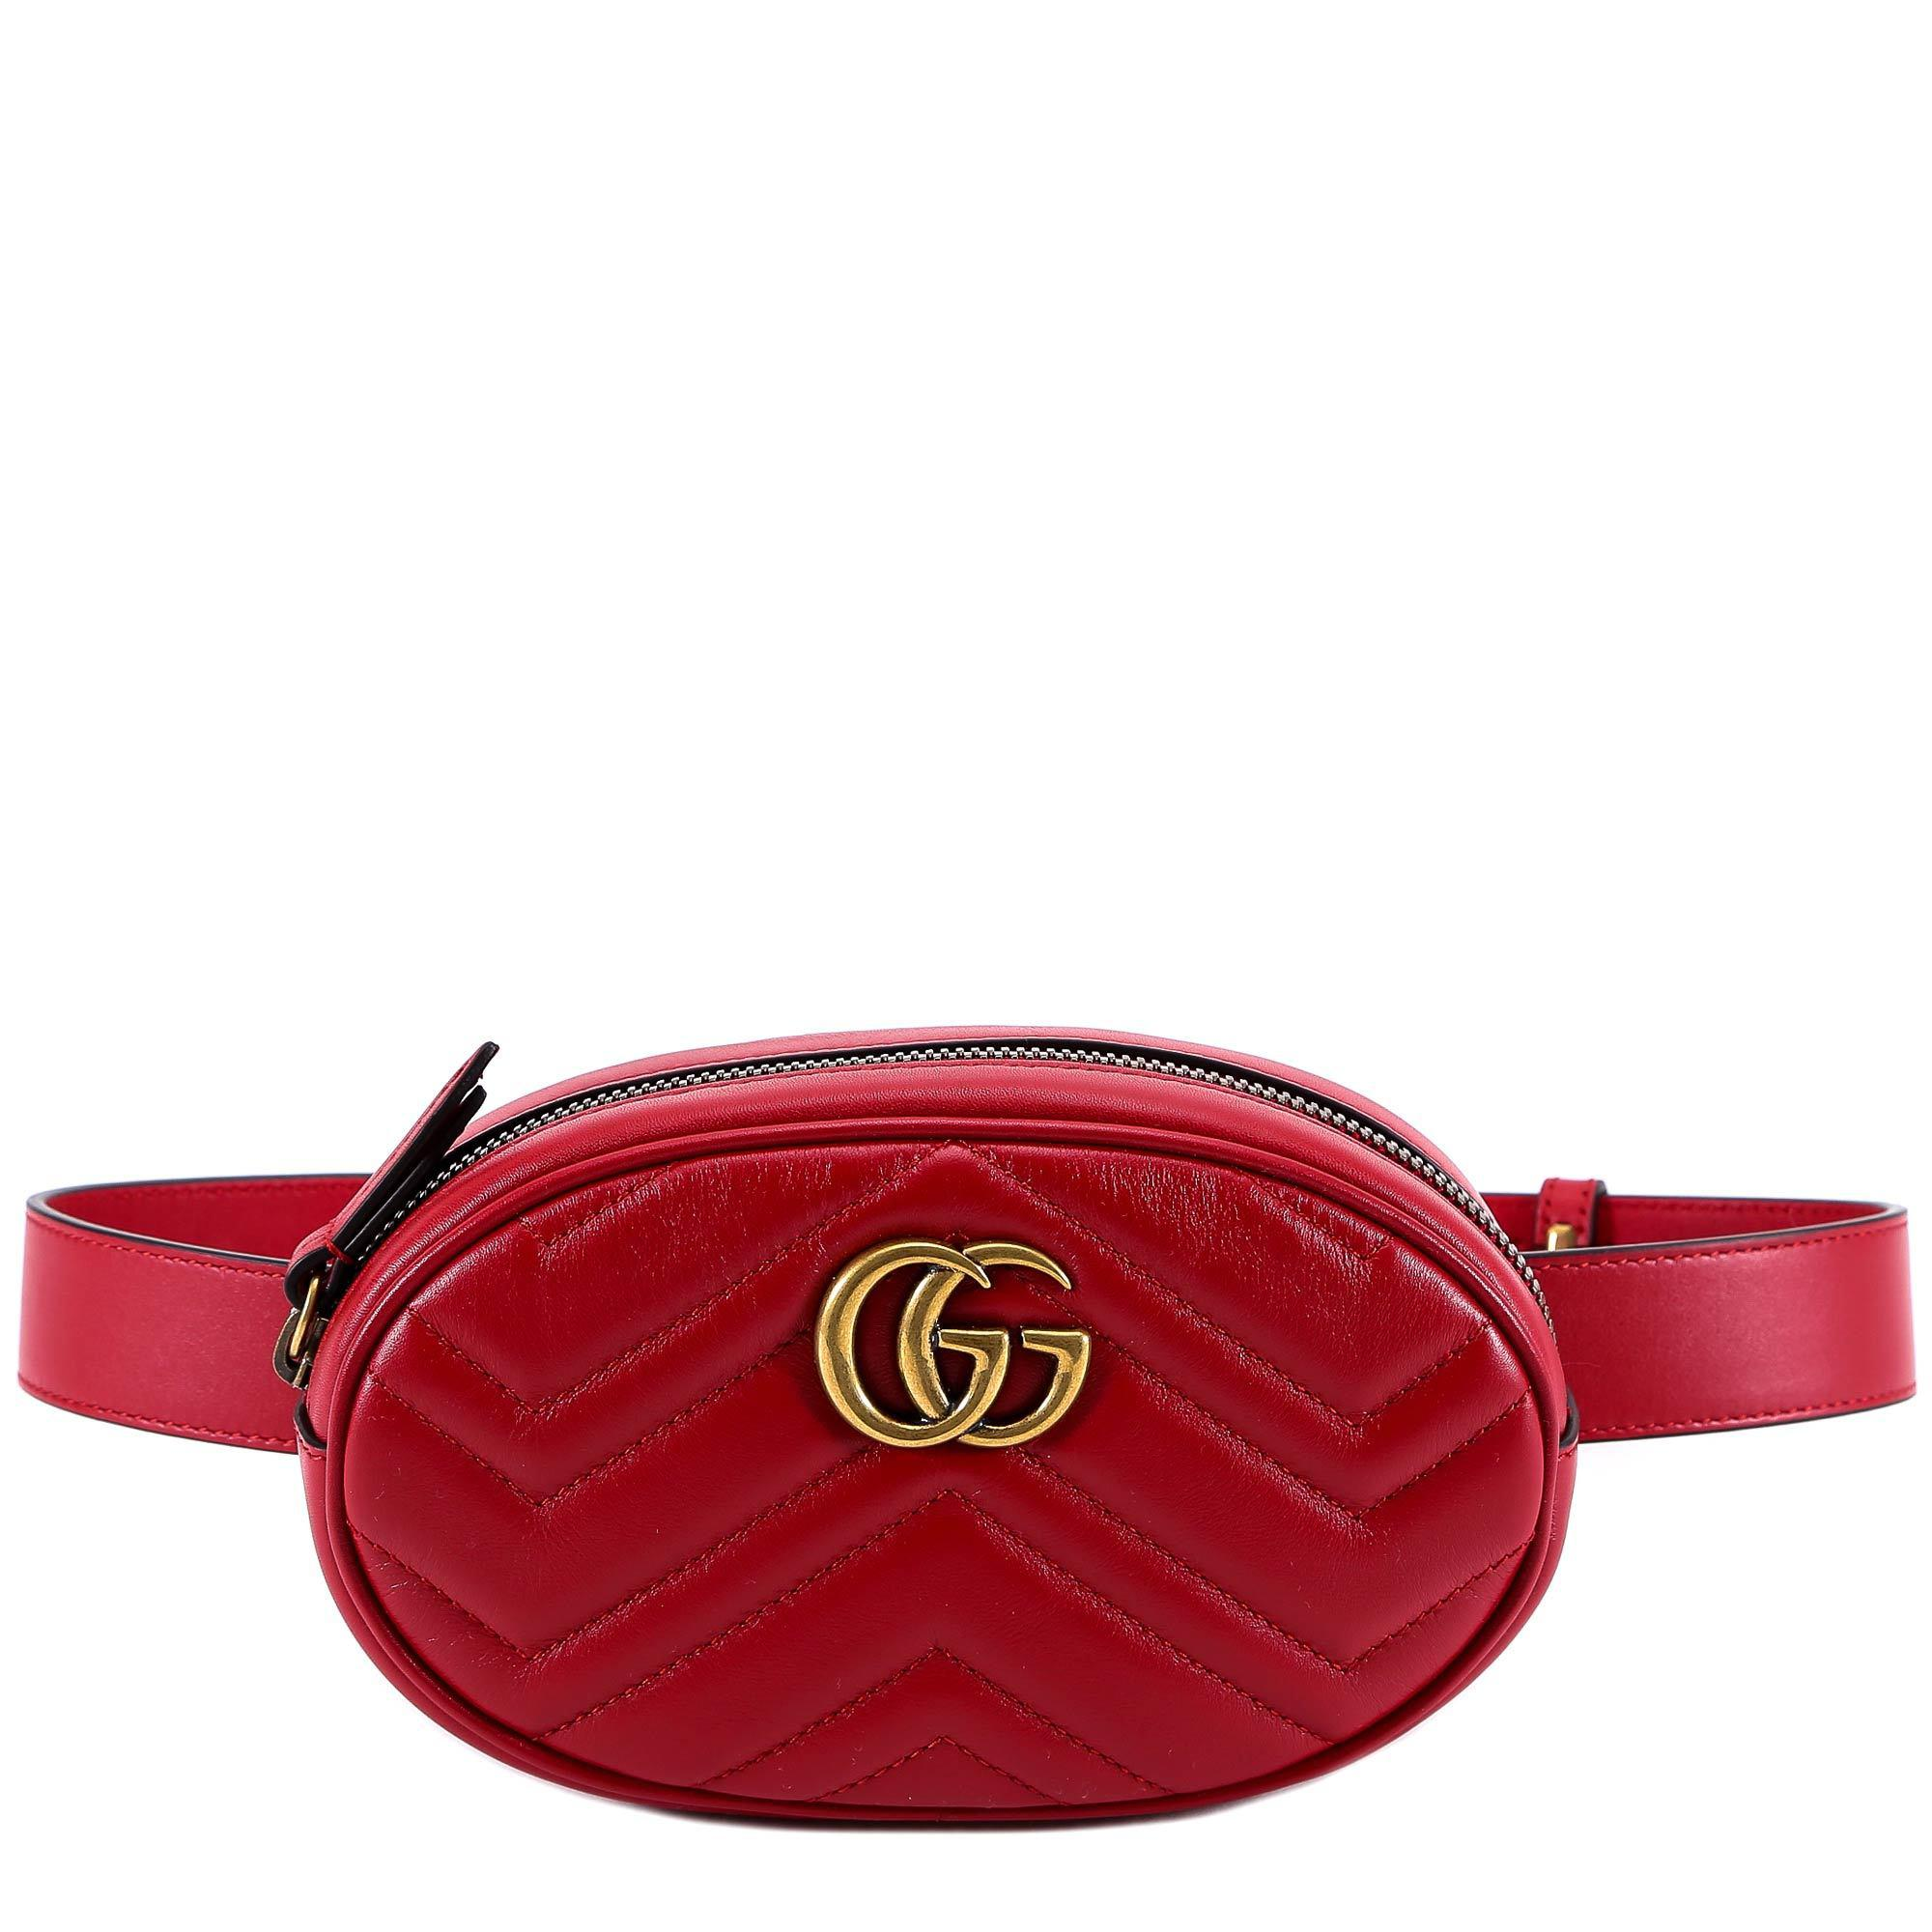 ec6a34935e18 Gucci GG Marmont Leather Belt Bag in Red - Lyst